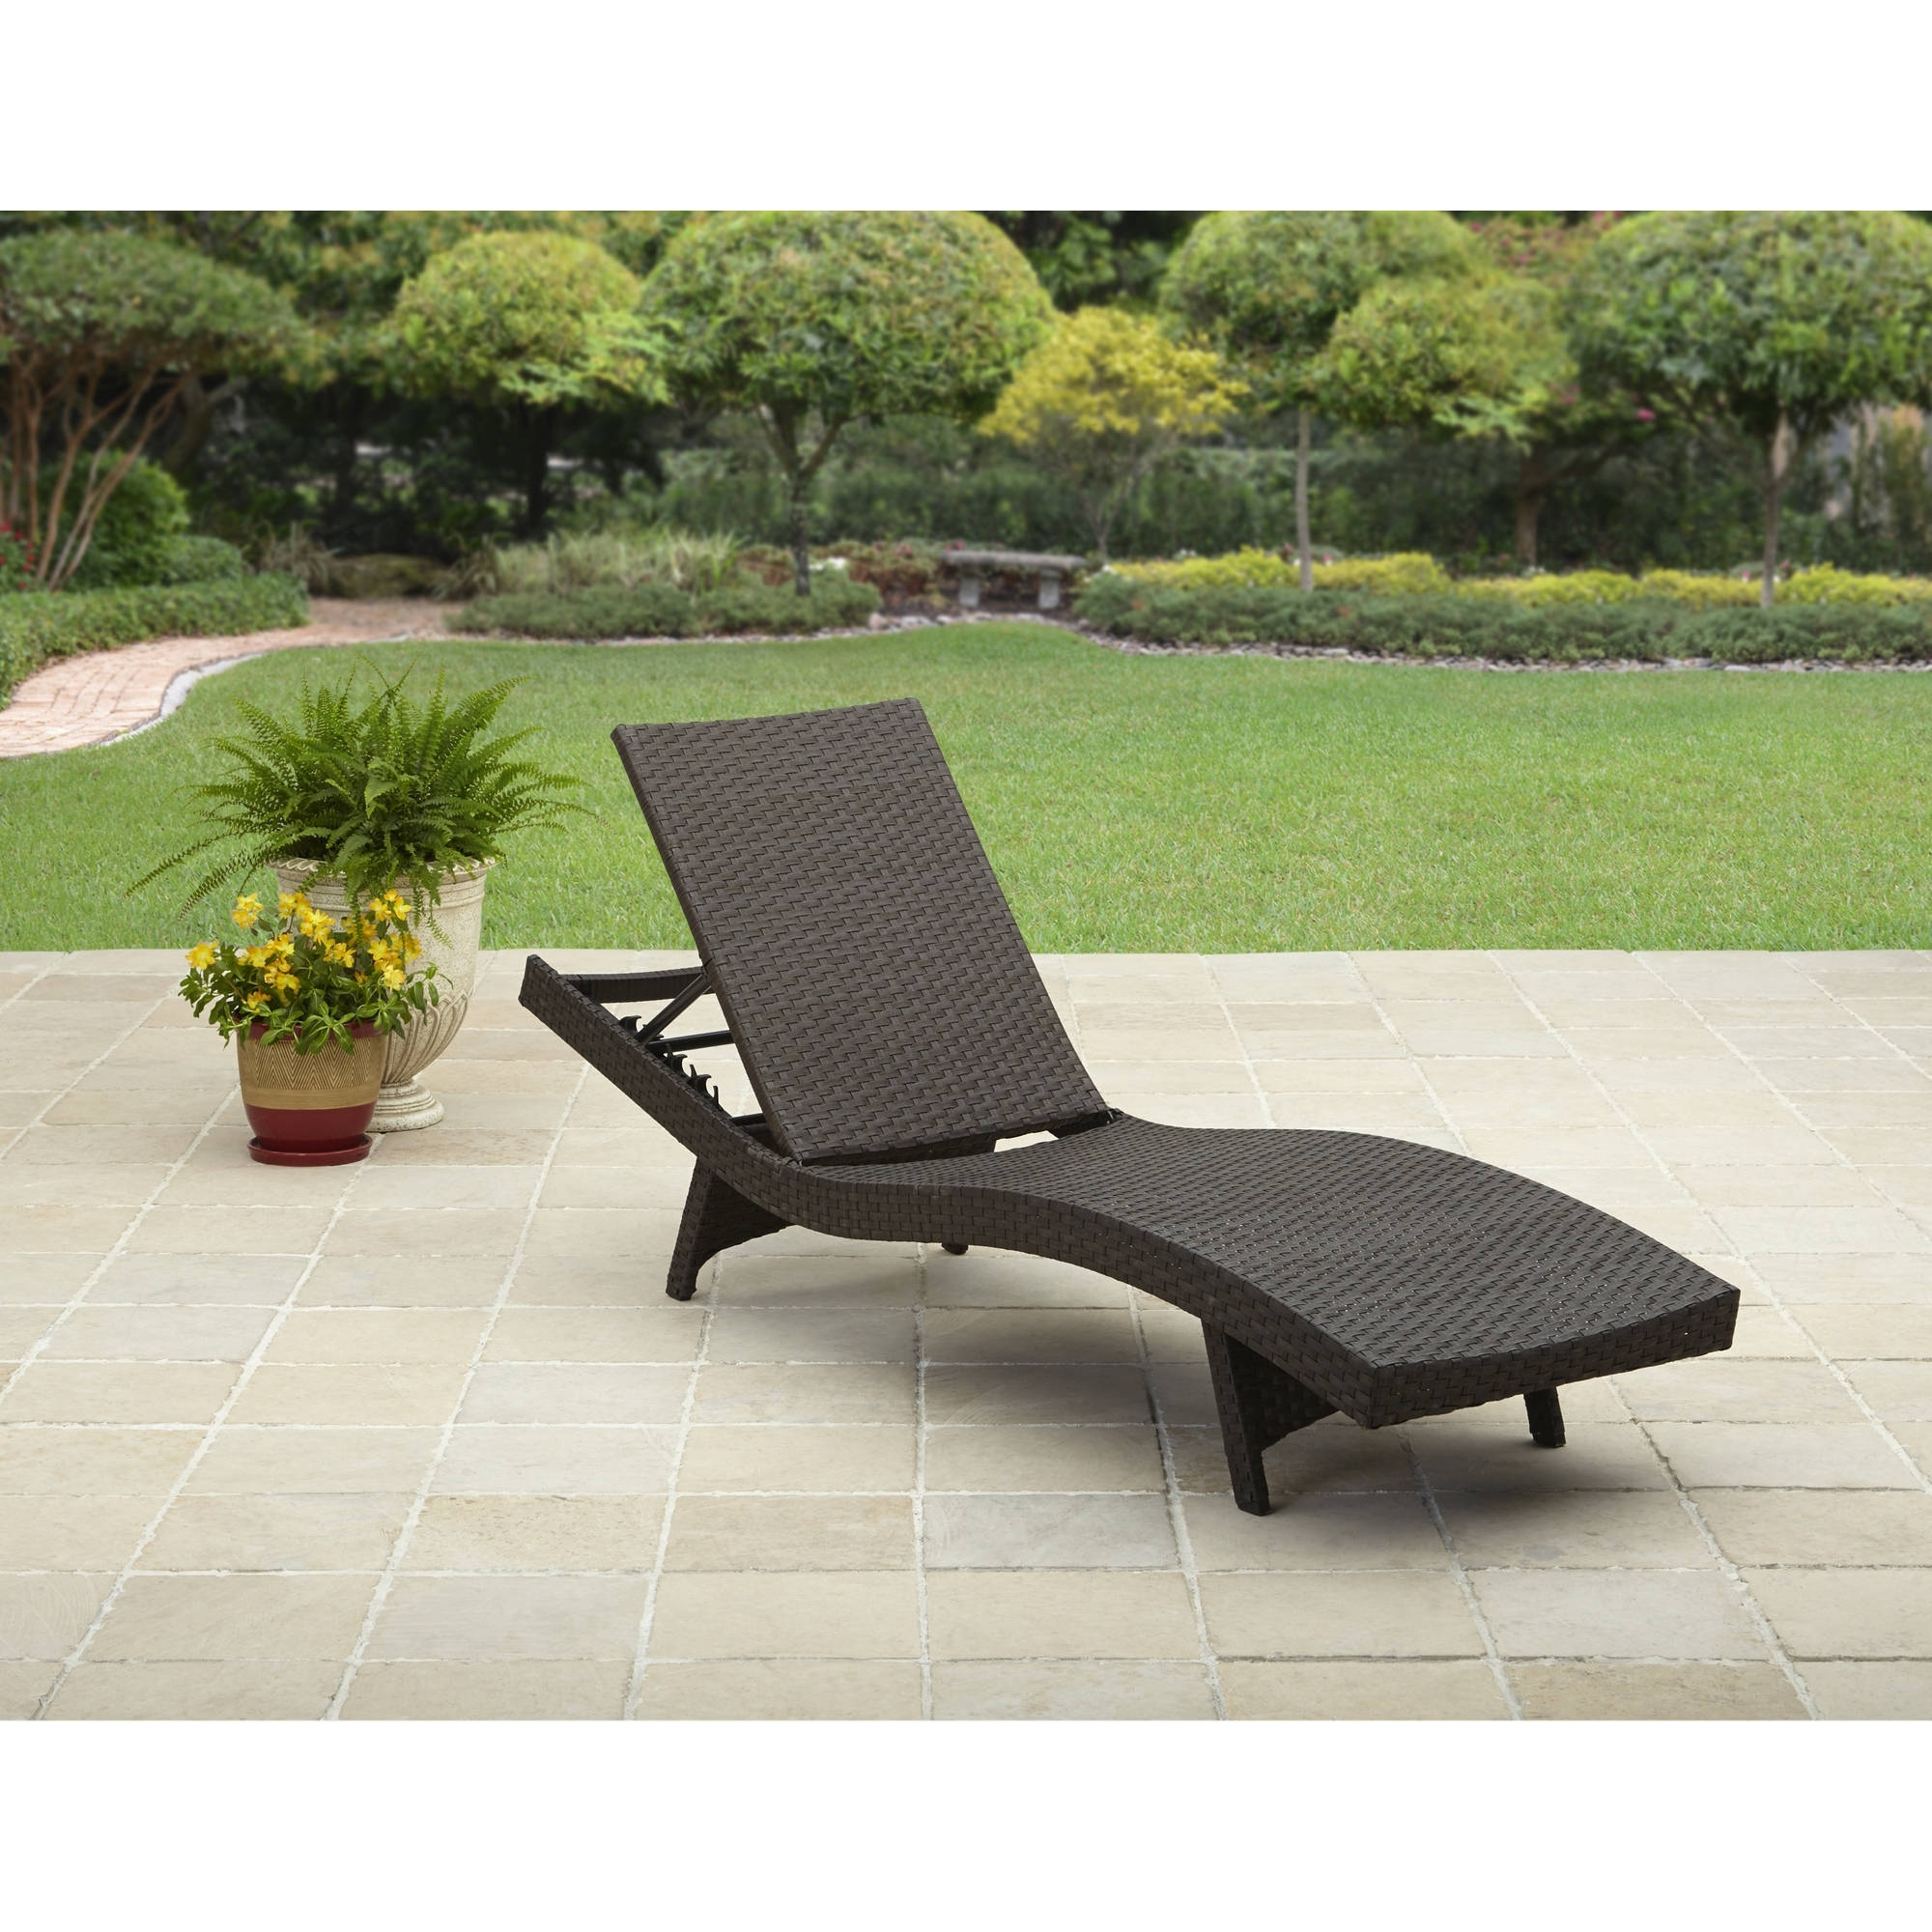 lounge covers cheap full concept setpool chaise image stunning outdoor cheappool lounges coverspool size clearance resin padspool pool chair wood chairs of